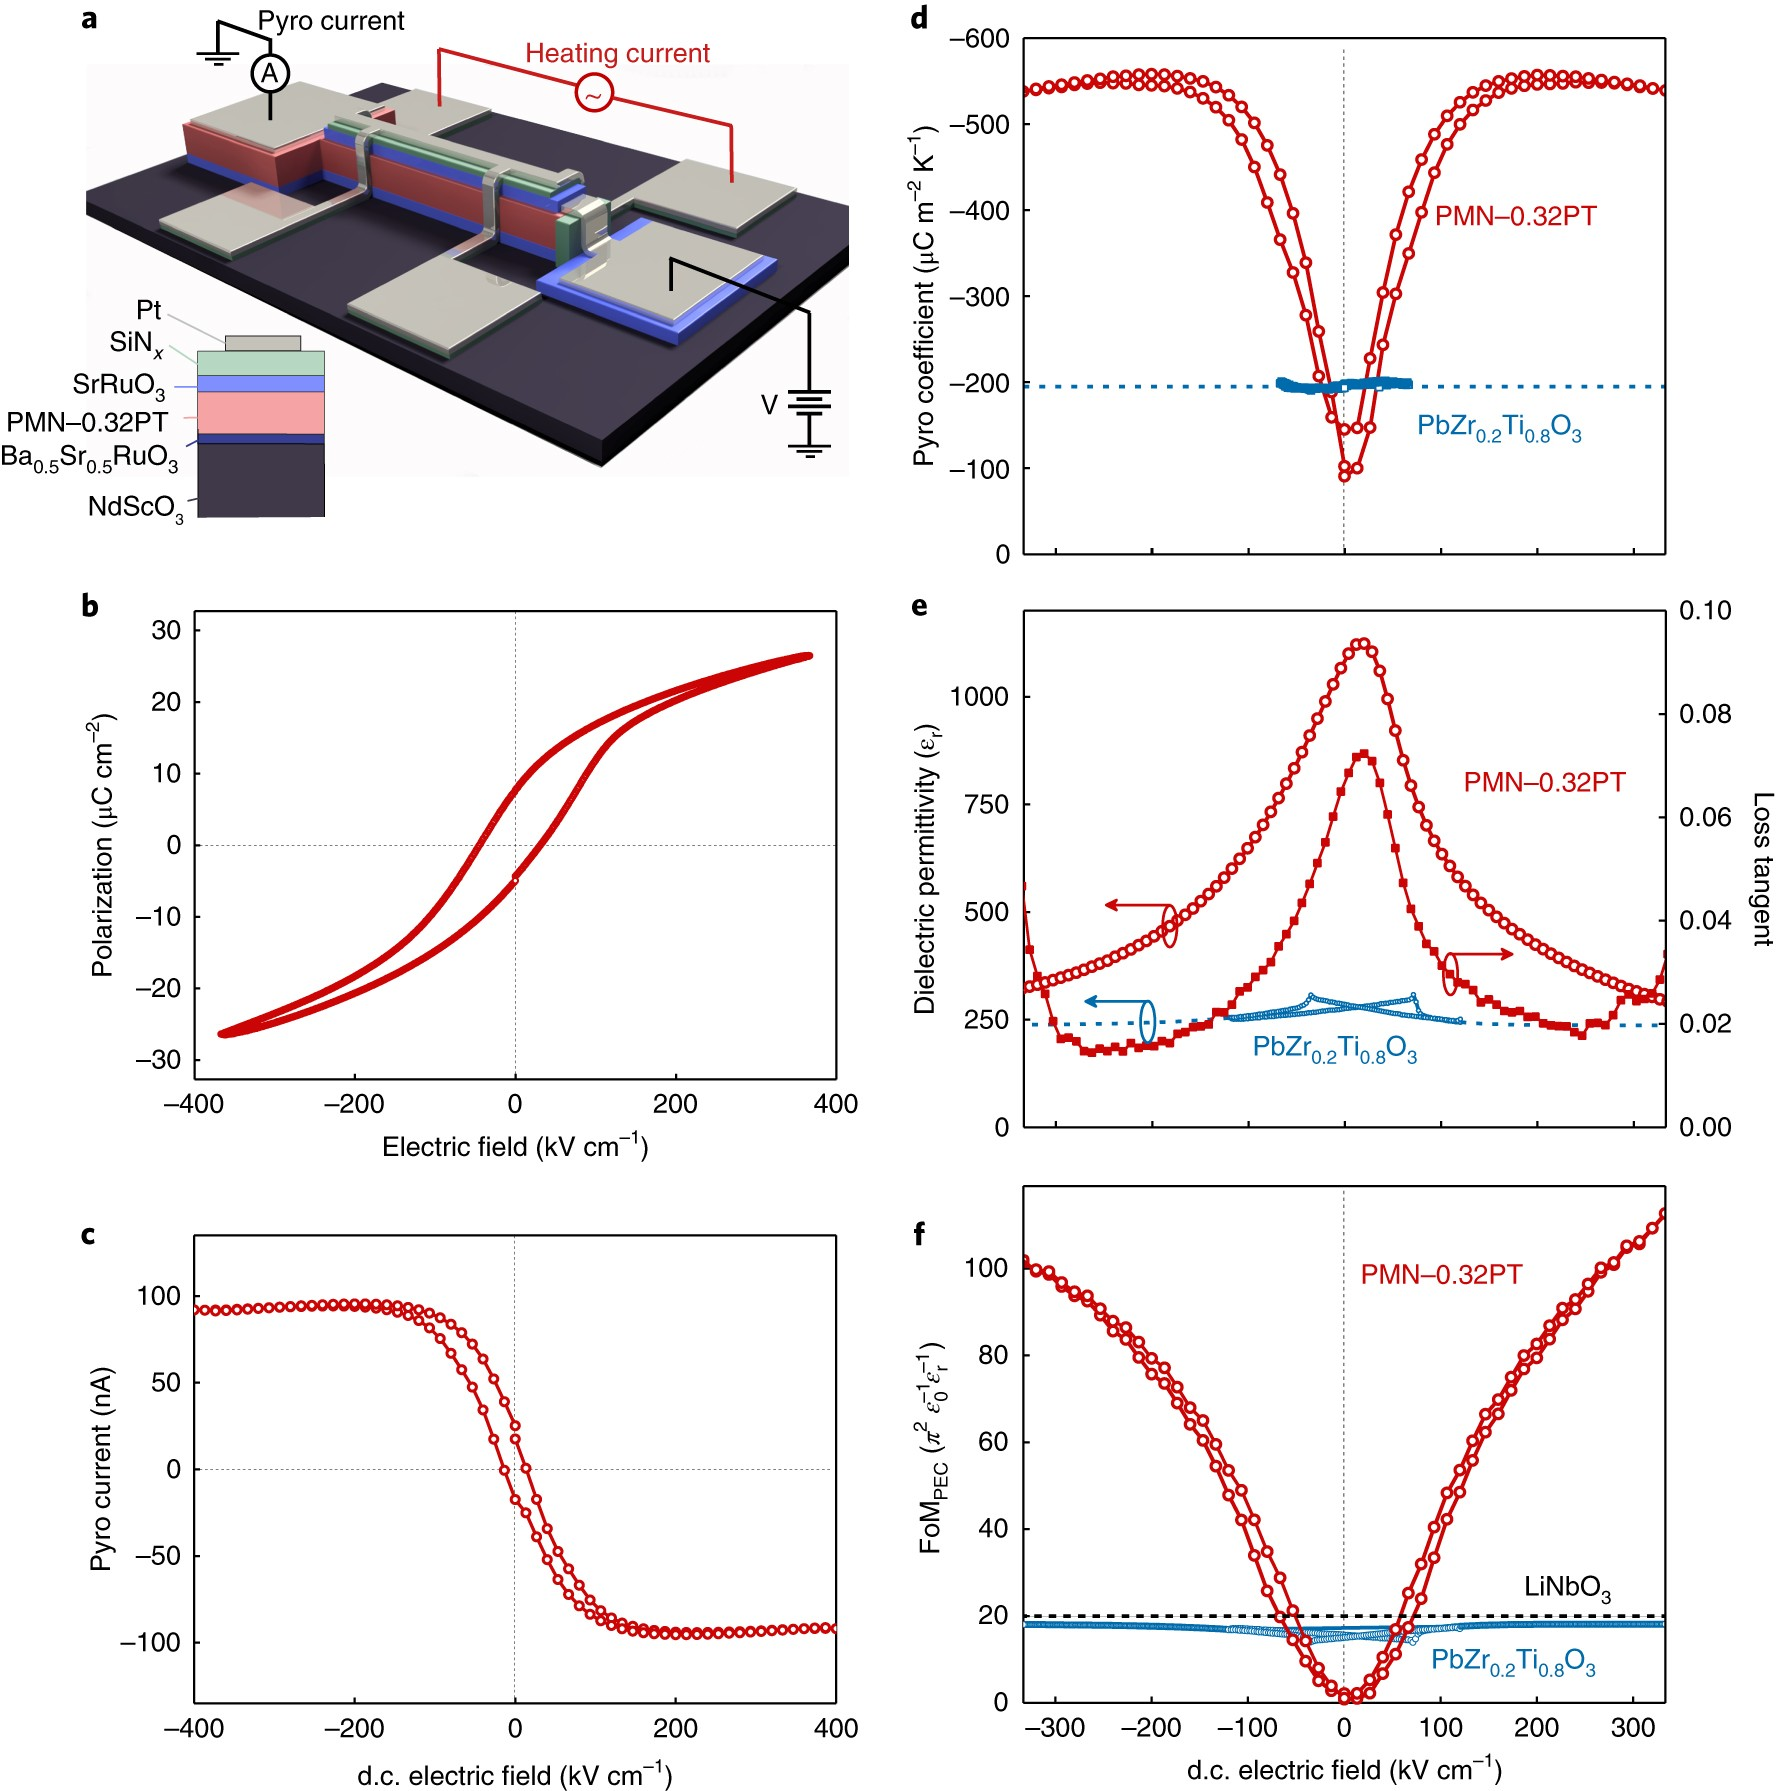 Pyroelectric Energy Conversion With Large And Power Density Stanford Research Sr 830 Lock In Amplifier A 560 Relaxor Ferroelectric Thin Films Nature Materials